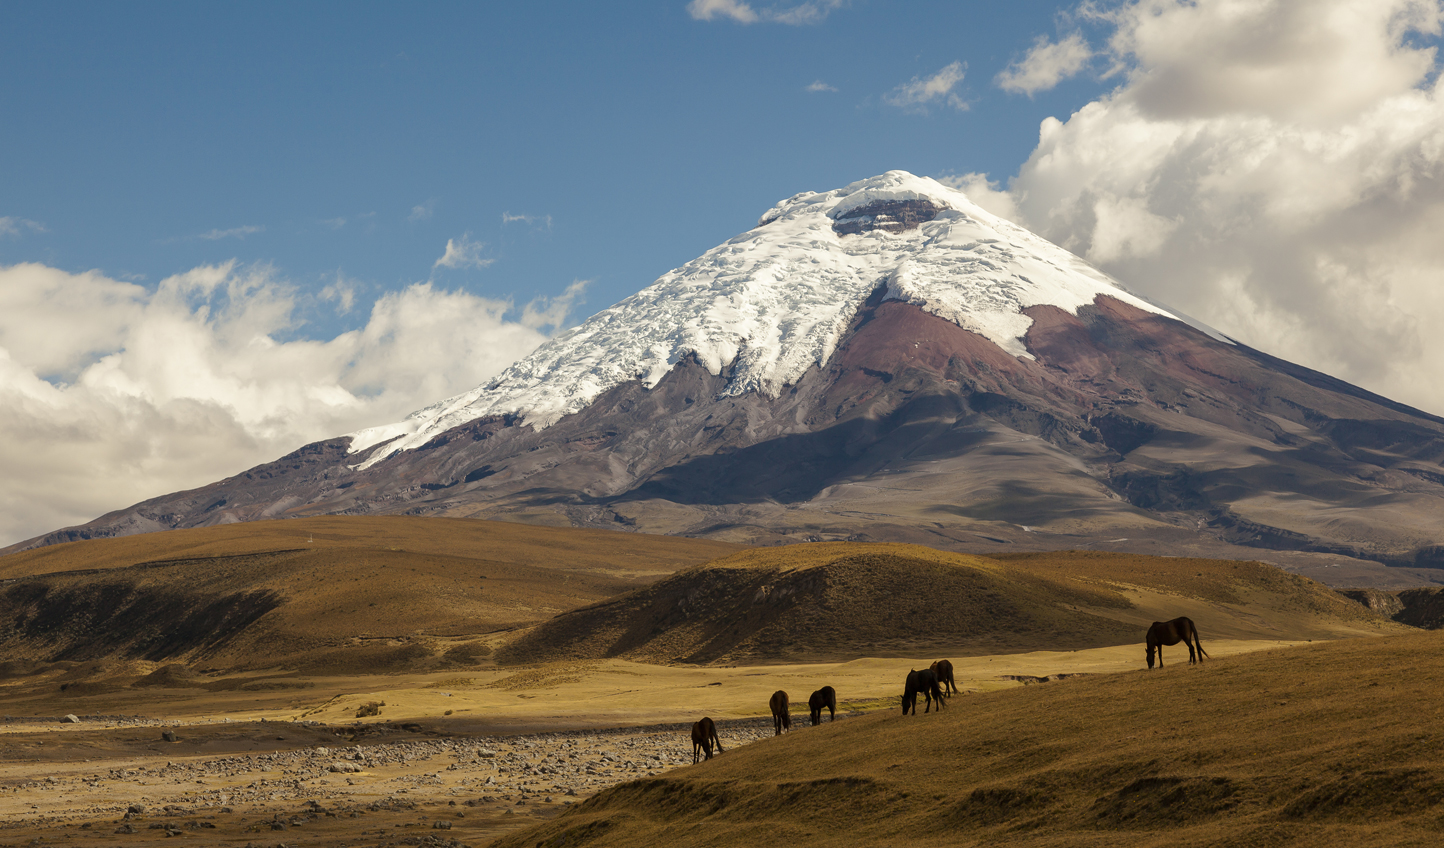 Escape the city and head out to Cotopaxi